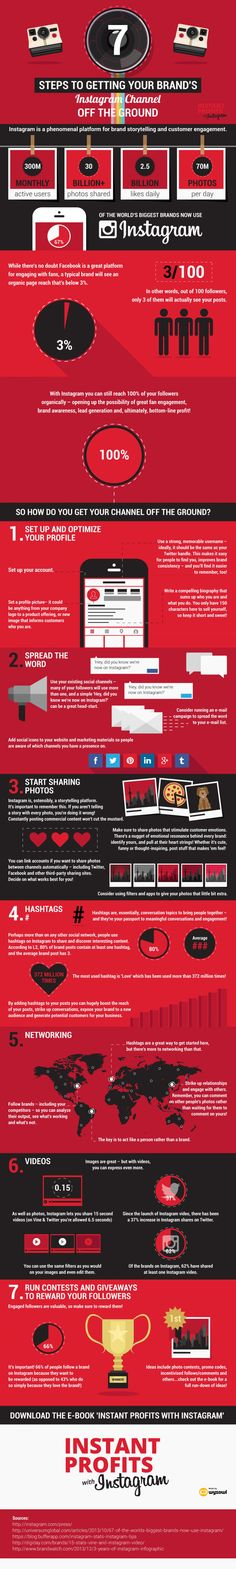 7 Steps to Getting Your Brand's Instagram Channel Off the Ground [Infographic, Digital Marketing, #NerdMentor]